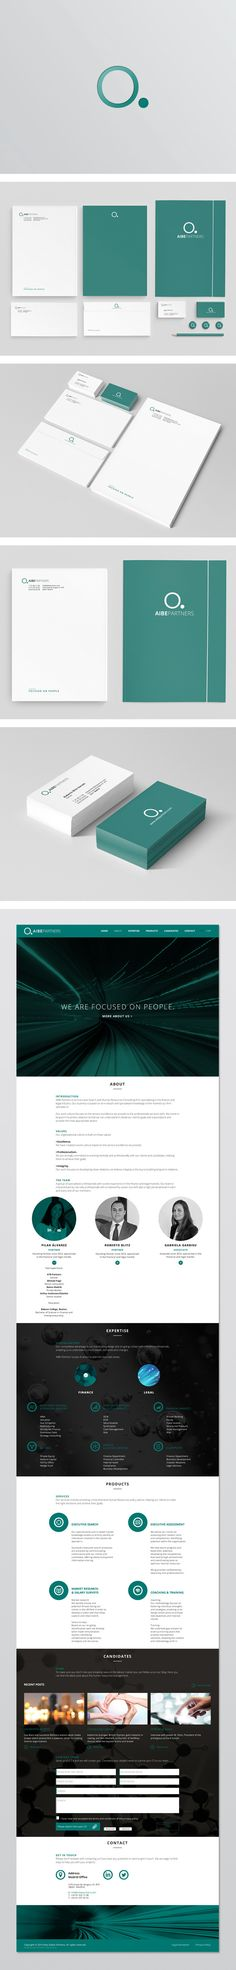 Aibe Partners themes includes, branding, corporate identity and design to…